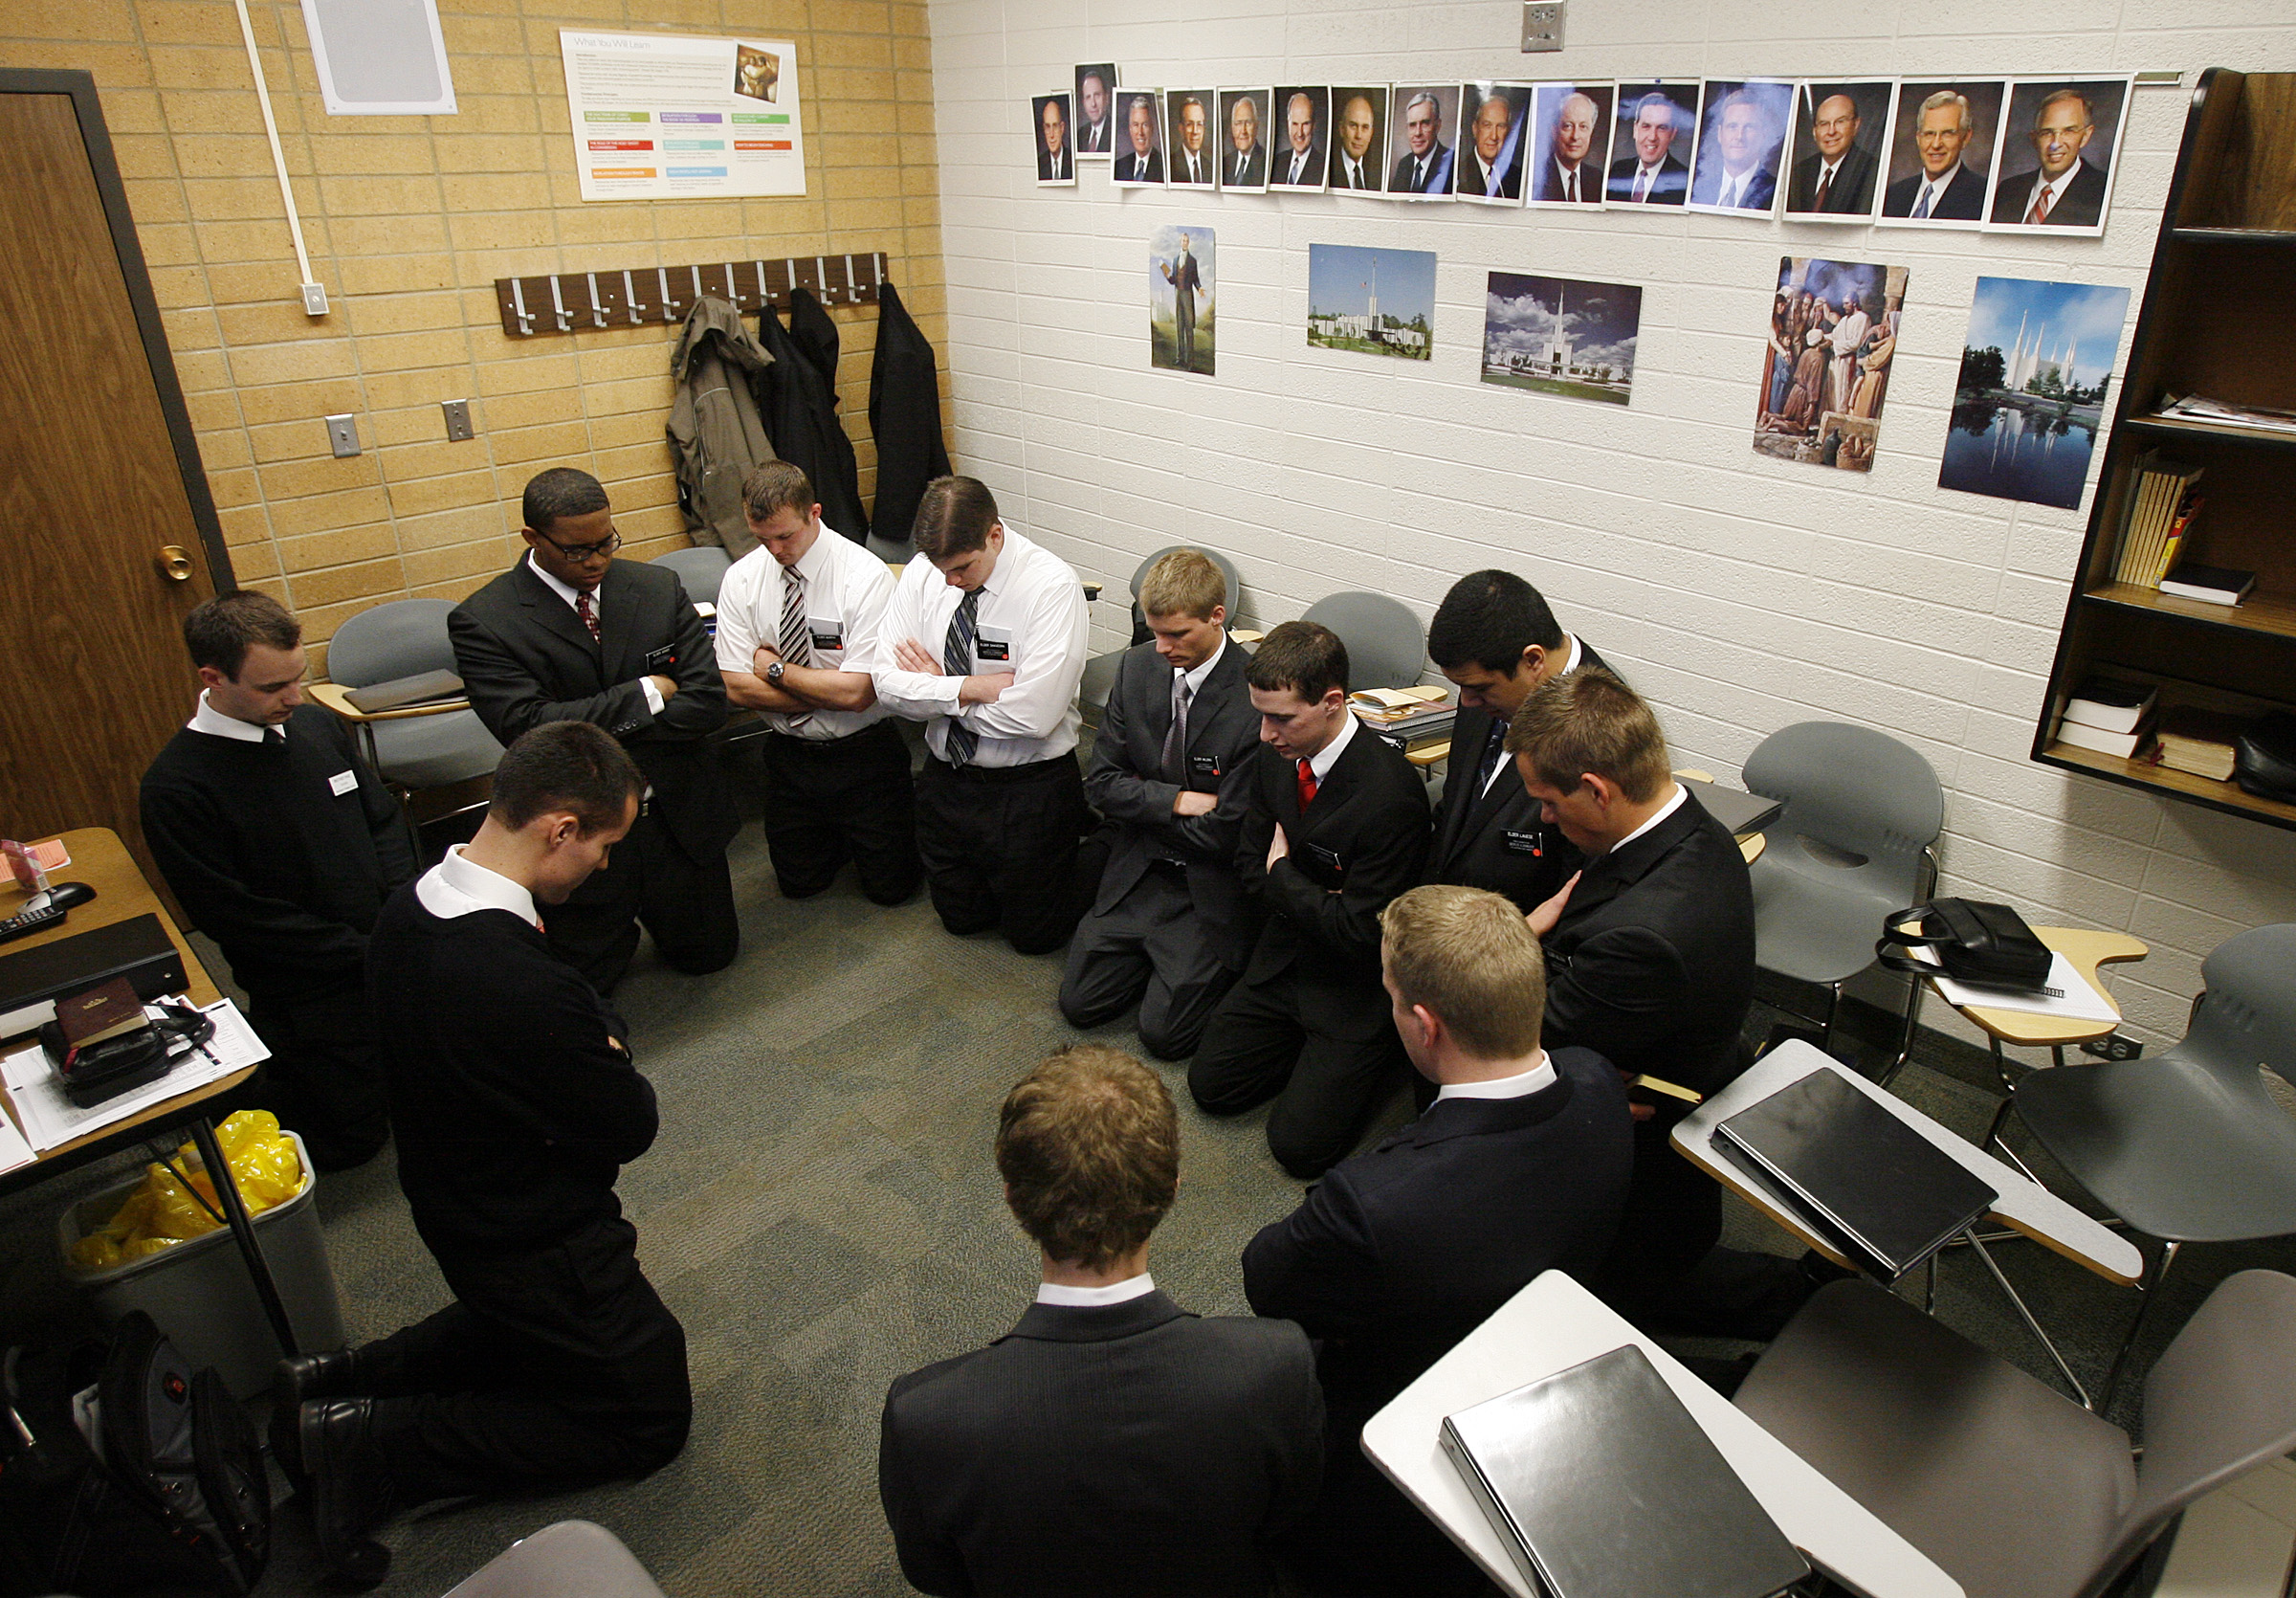 Missionaries begin their class with prayer on their first day at the Provo Missionary Training Center in one of the MTC's training buildings in Provo, Utah, Wednesday, Feb. 2, 2011.